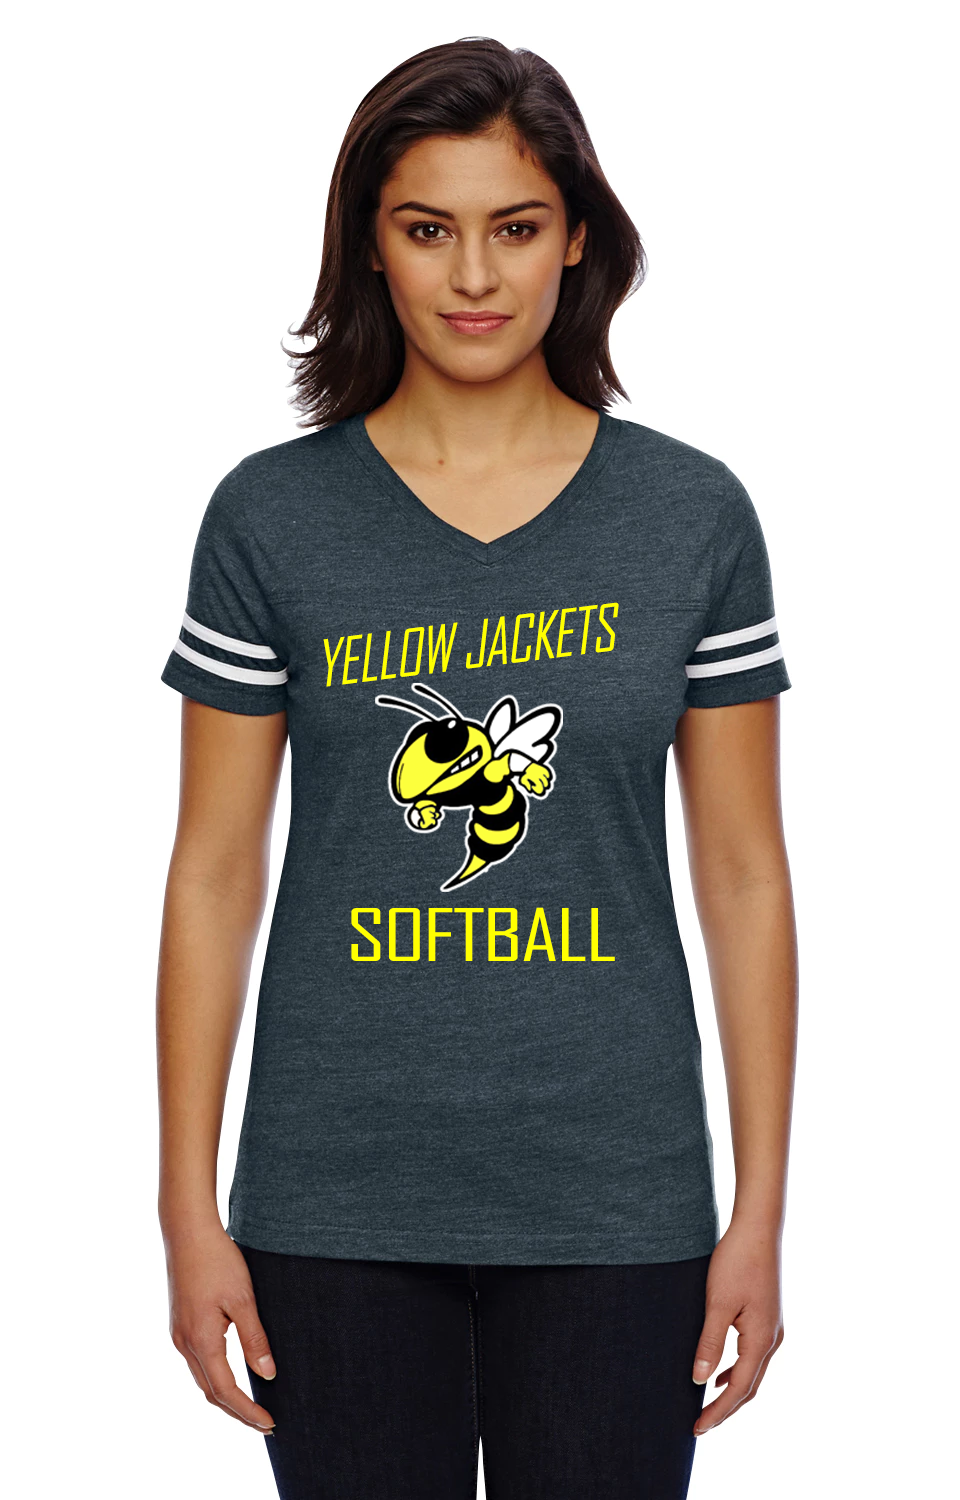 3b36d7698 Yellow Jackets Softball Ladies Jersey - Wavemakers Custom Apparel & More